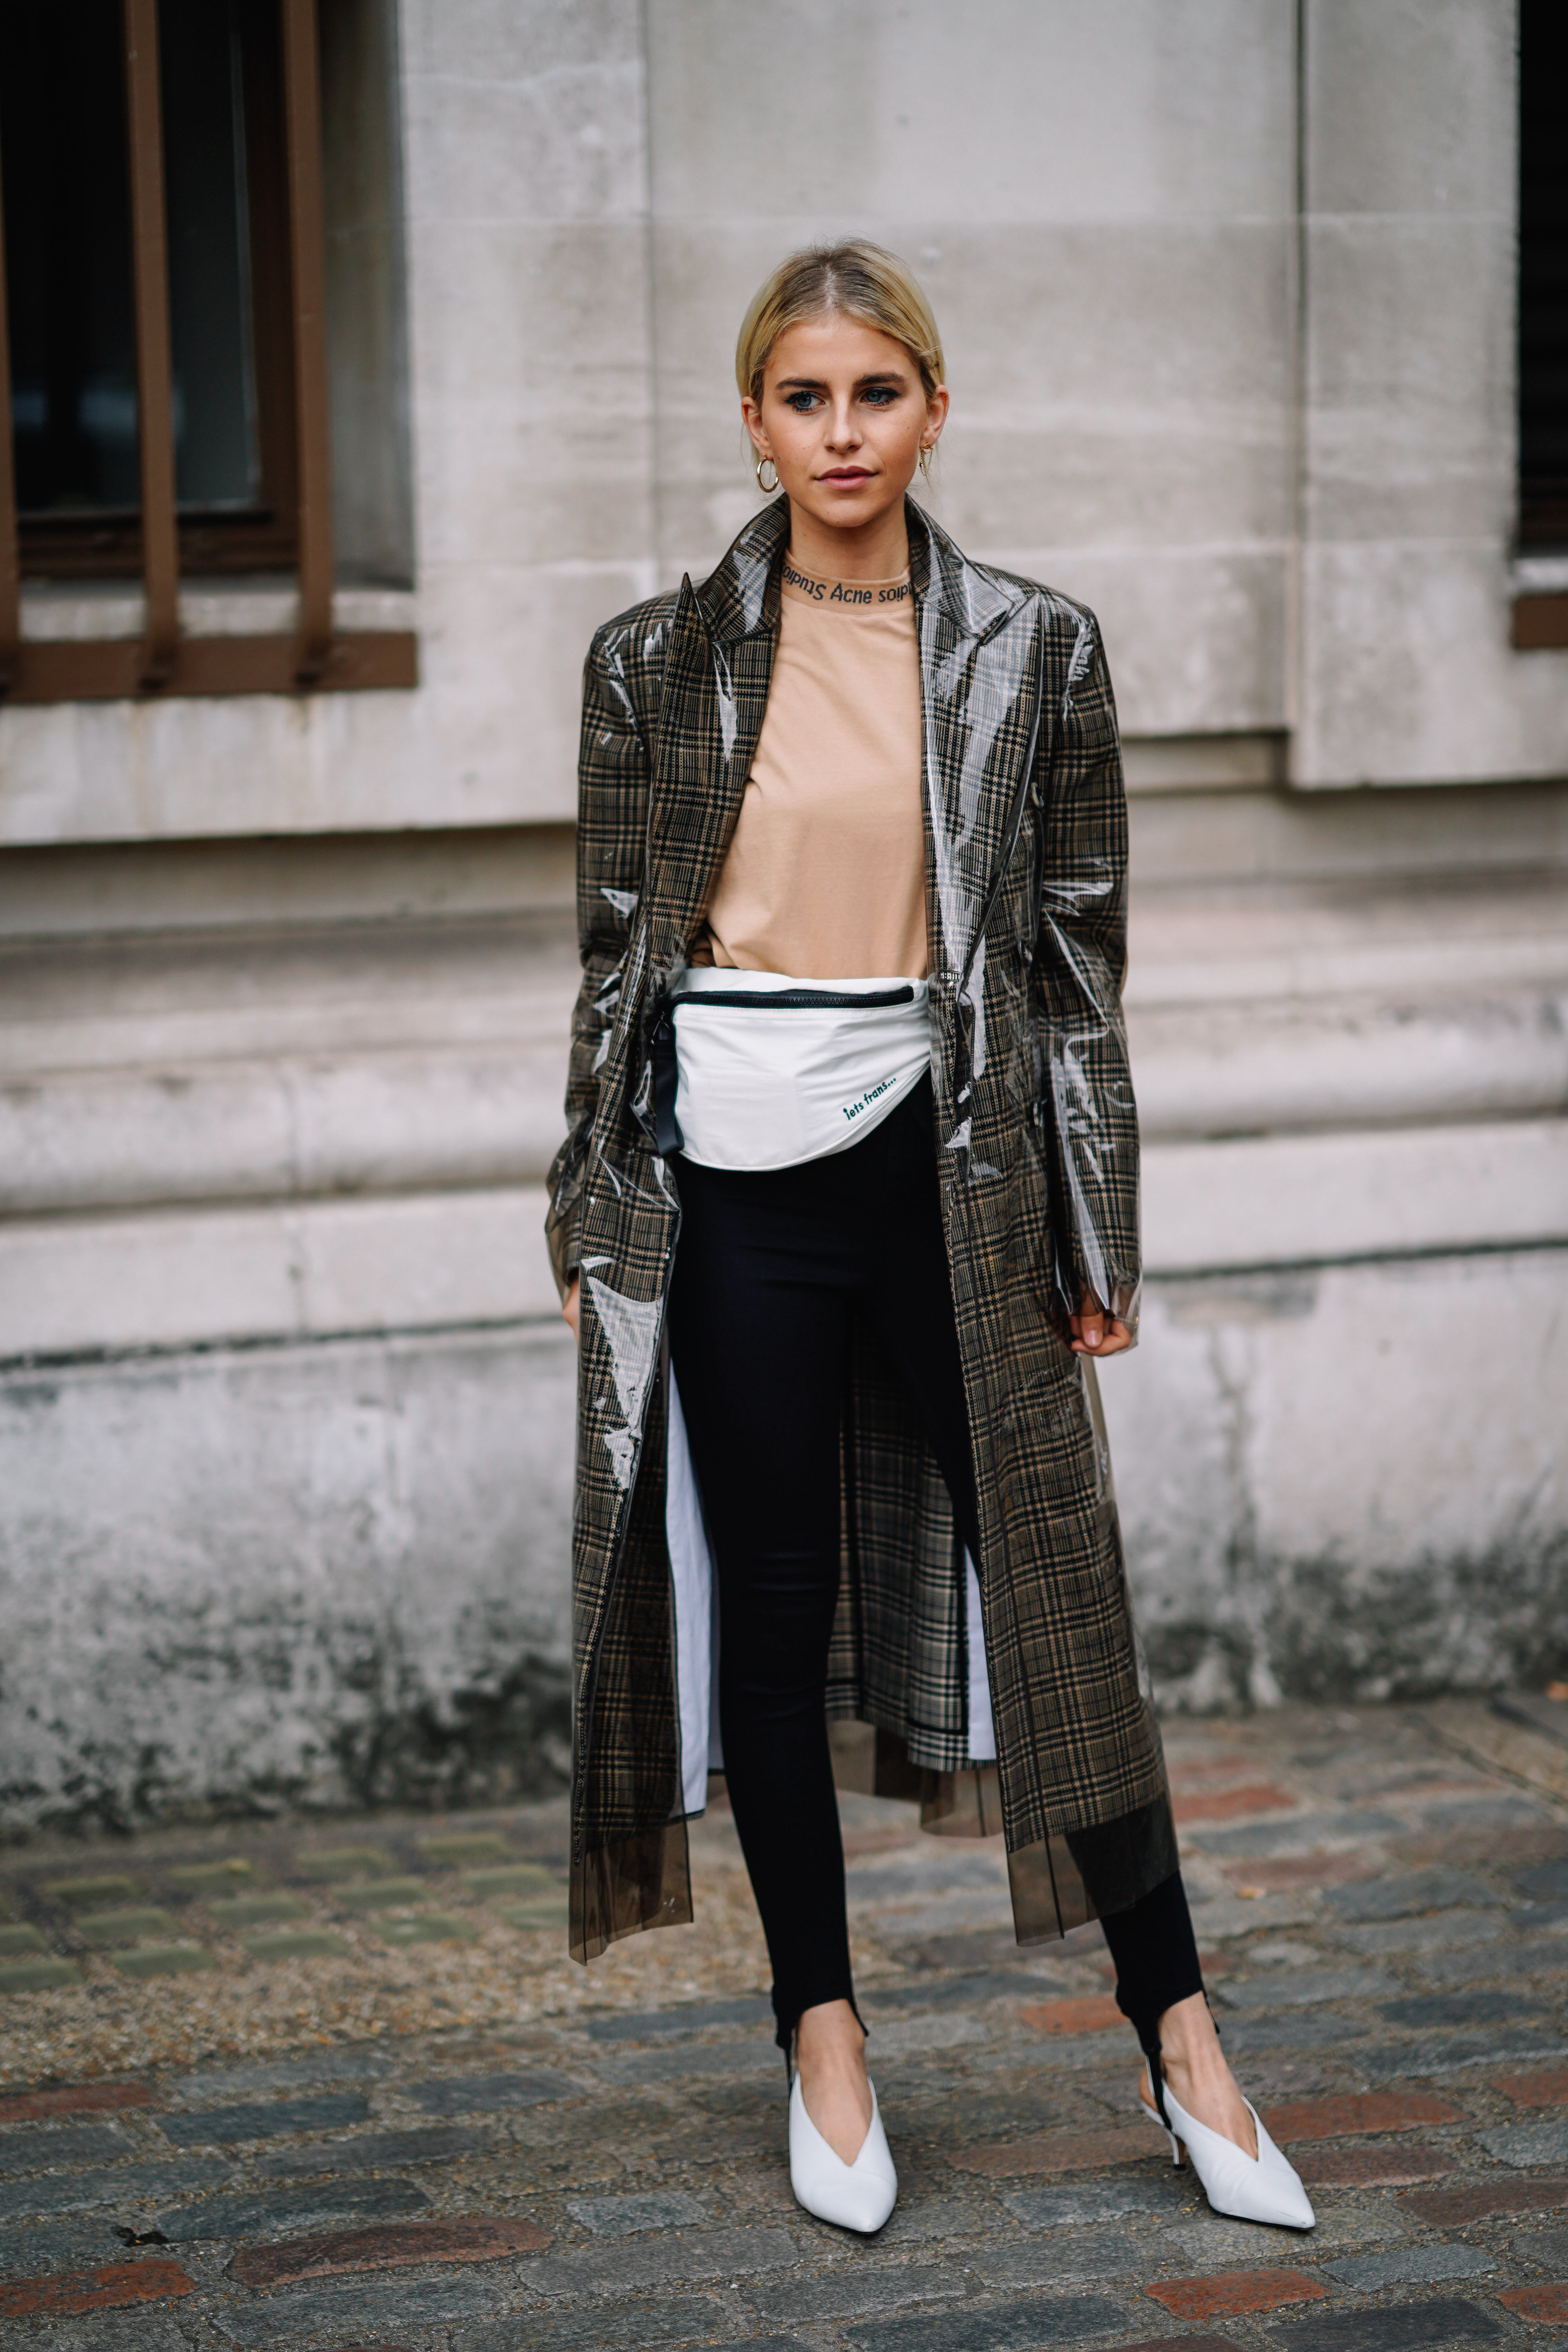 Fanny Pack Trend That Everyone Need To Try Again This Season